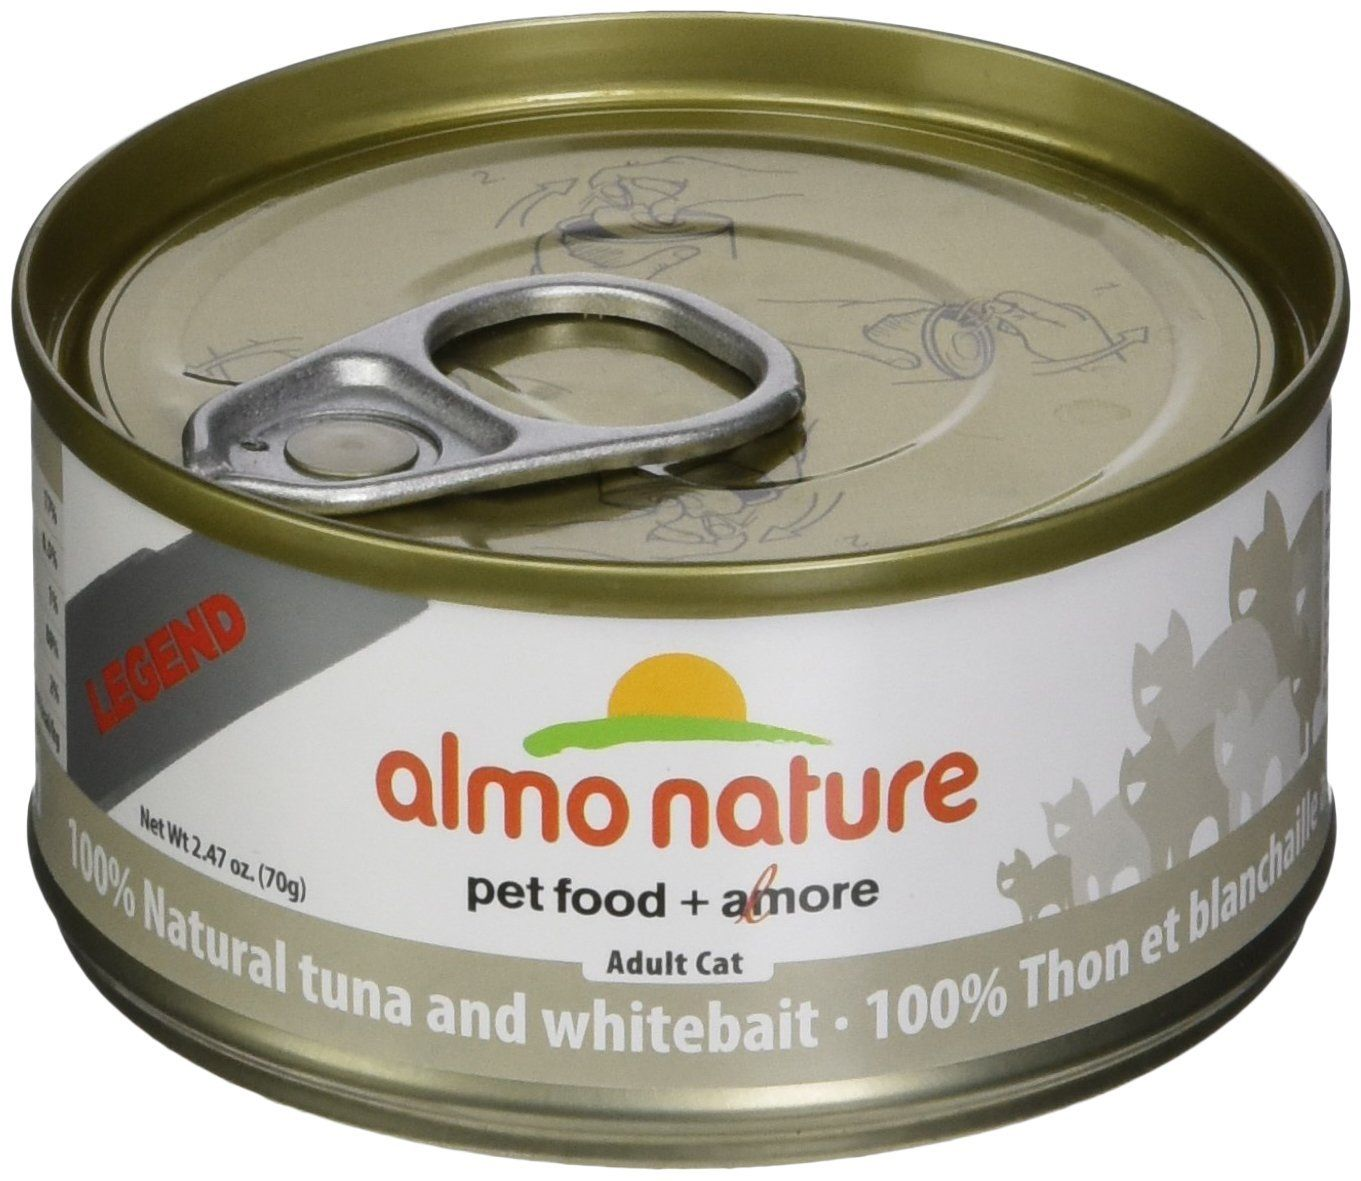 Almo 2 47 Oz Legend Tuna And Whitebait Canned Cat Food 24 Case Medium Want To Know More Click On The Image T Canned Cat Food Natural Pet Food Cat Food